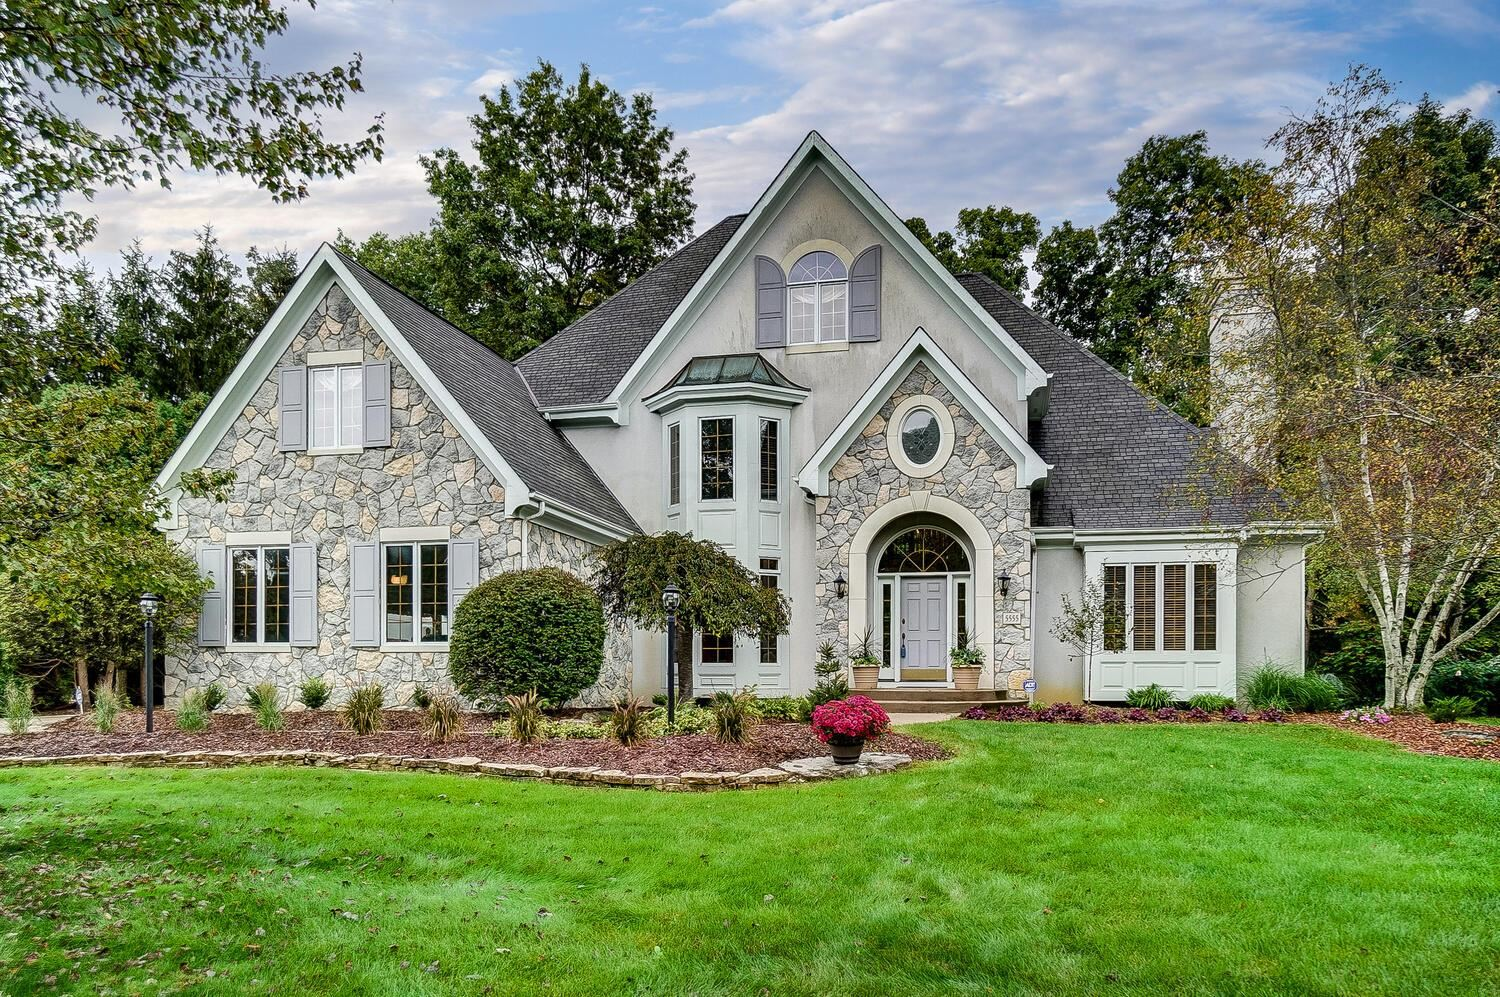 Photo of 5555 Stillwater Avenue, Westerville, OH 43082 (MLS # 221039839)